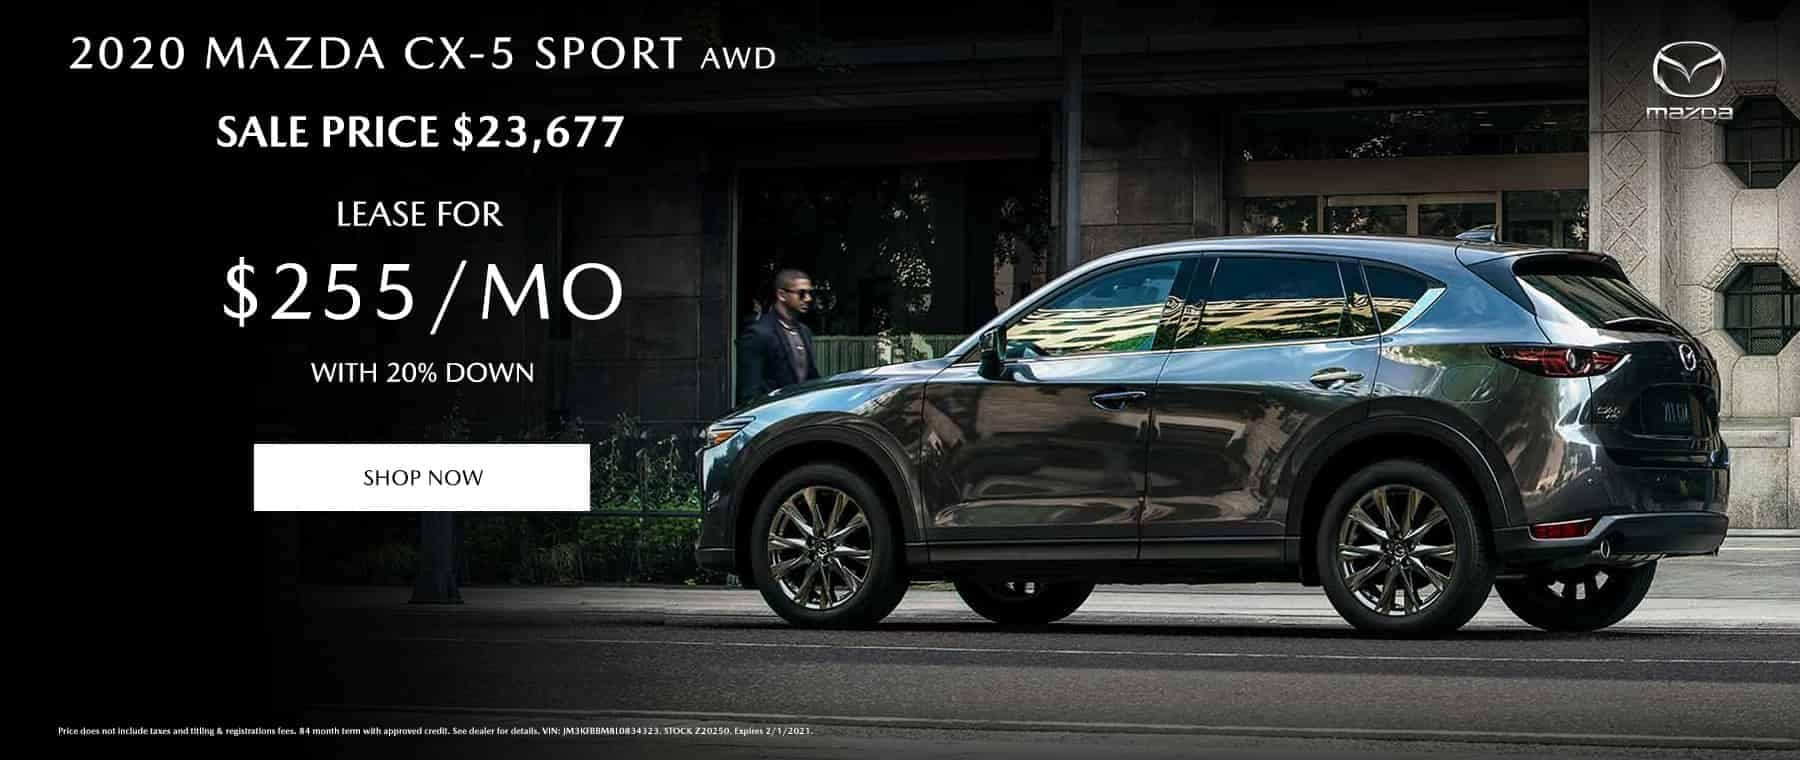 2020 Mazda CX-5 Sport AWD Sale Price $23,677 / Only $255/mo